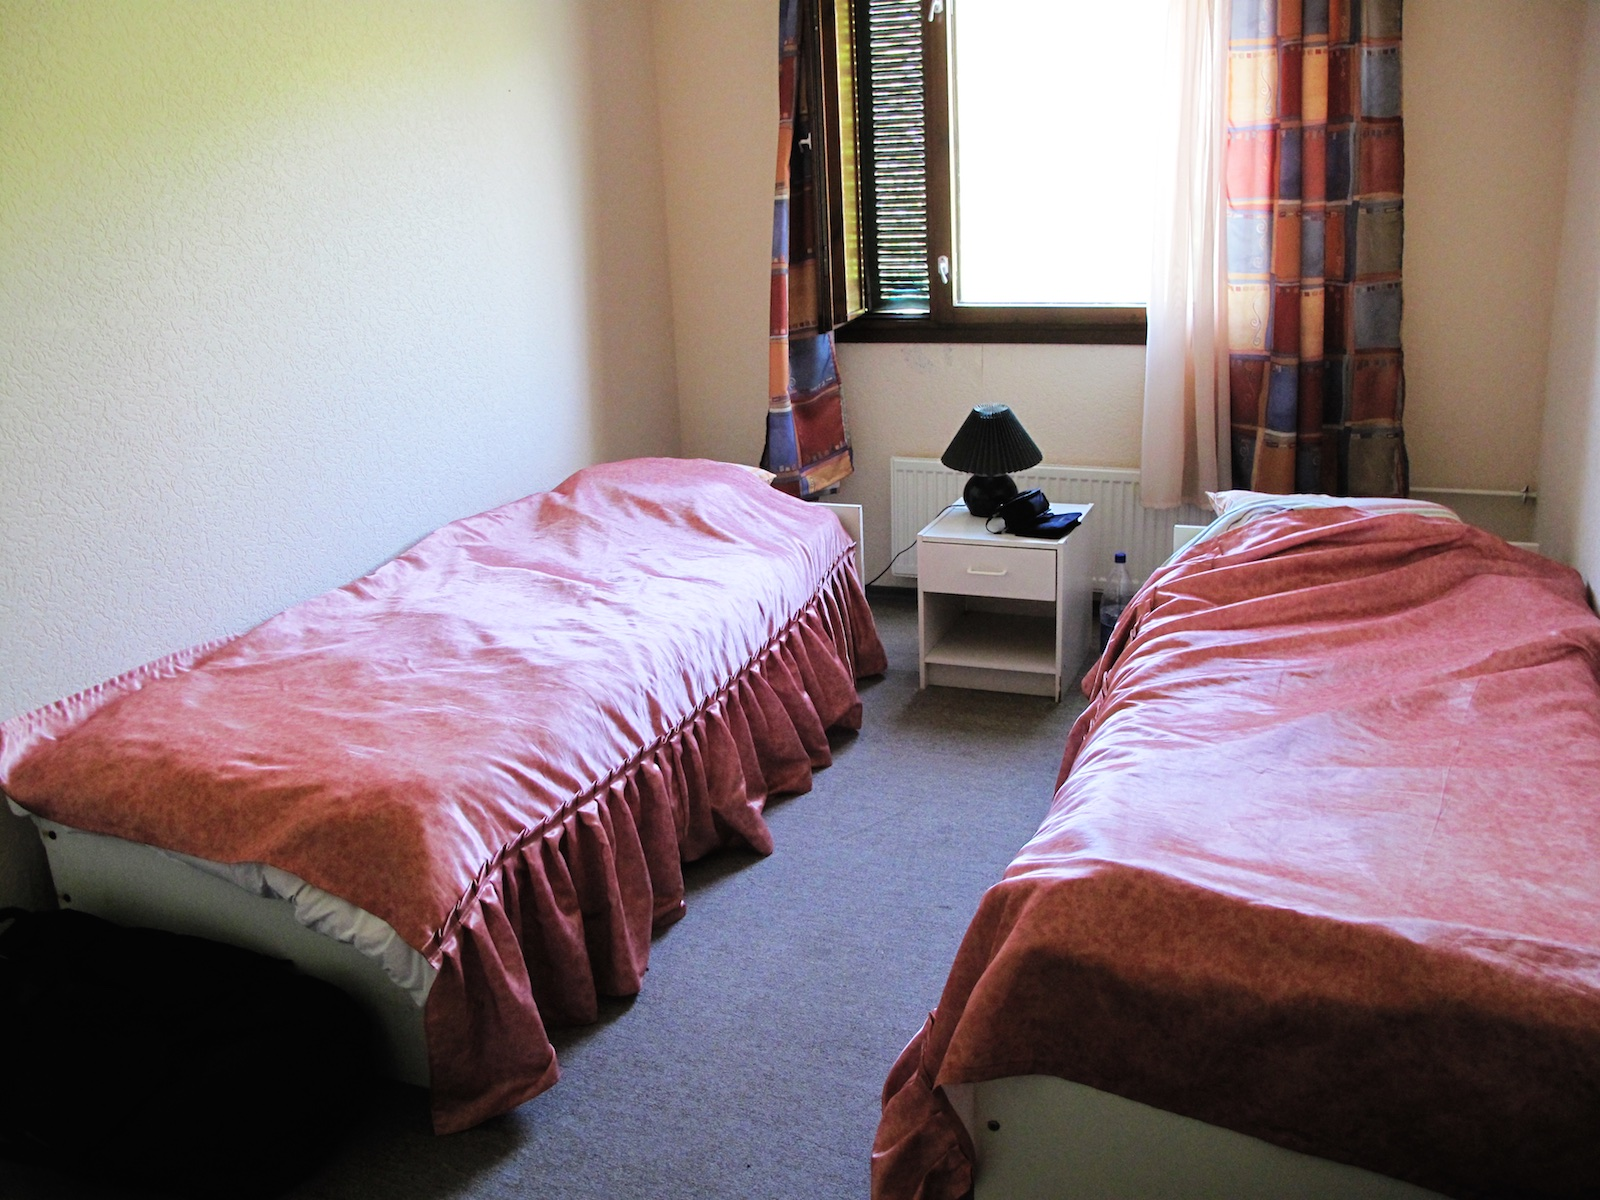 Weak photo showing two single beds and not much else in a narrow room